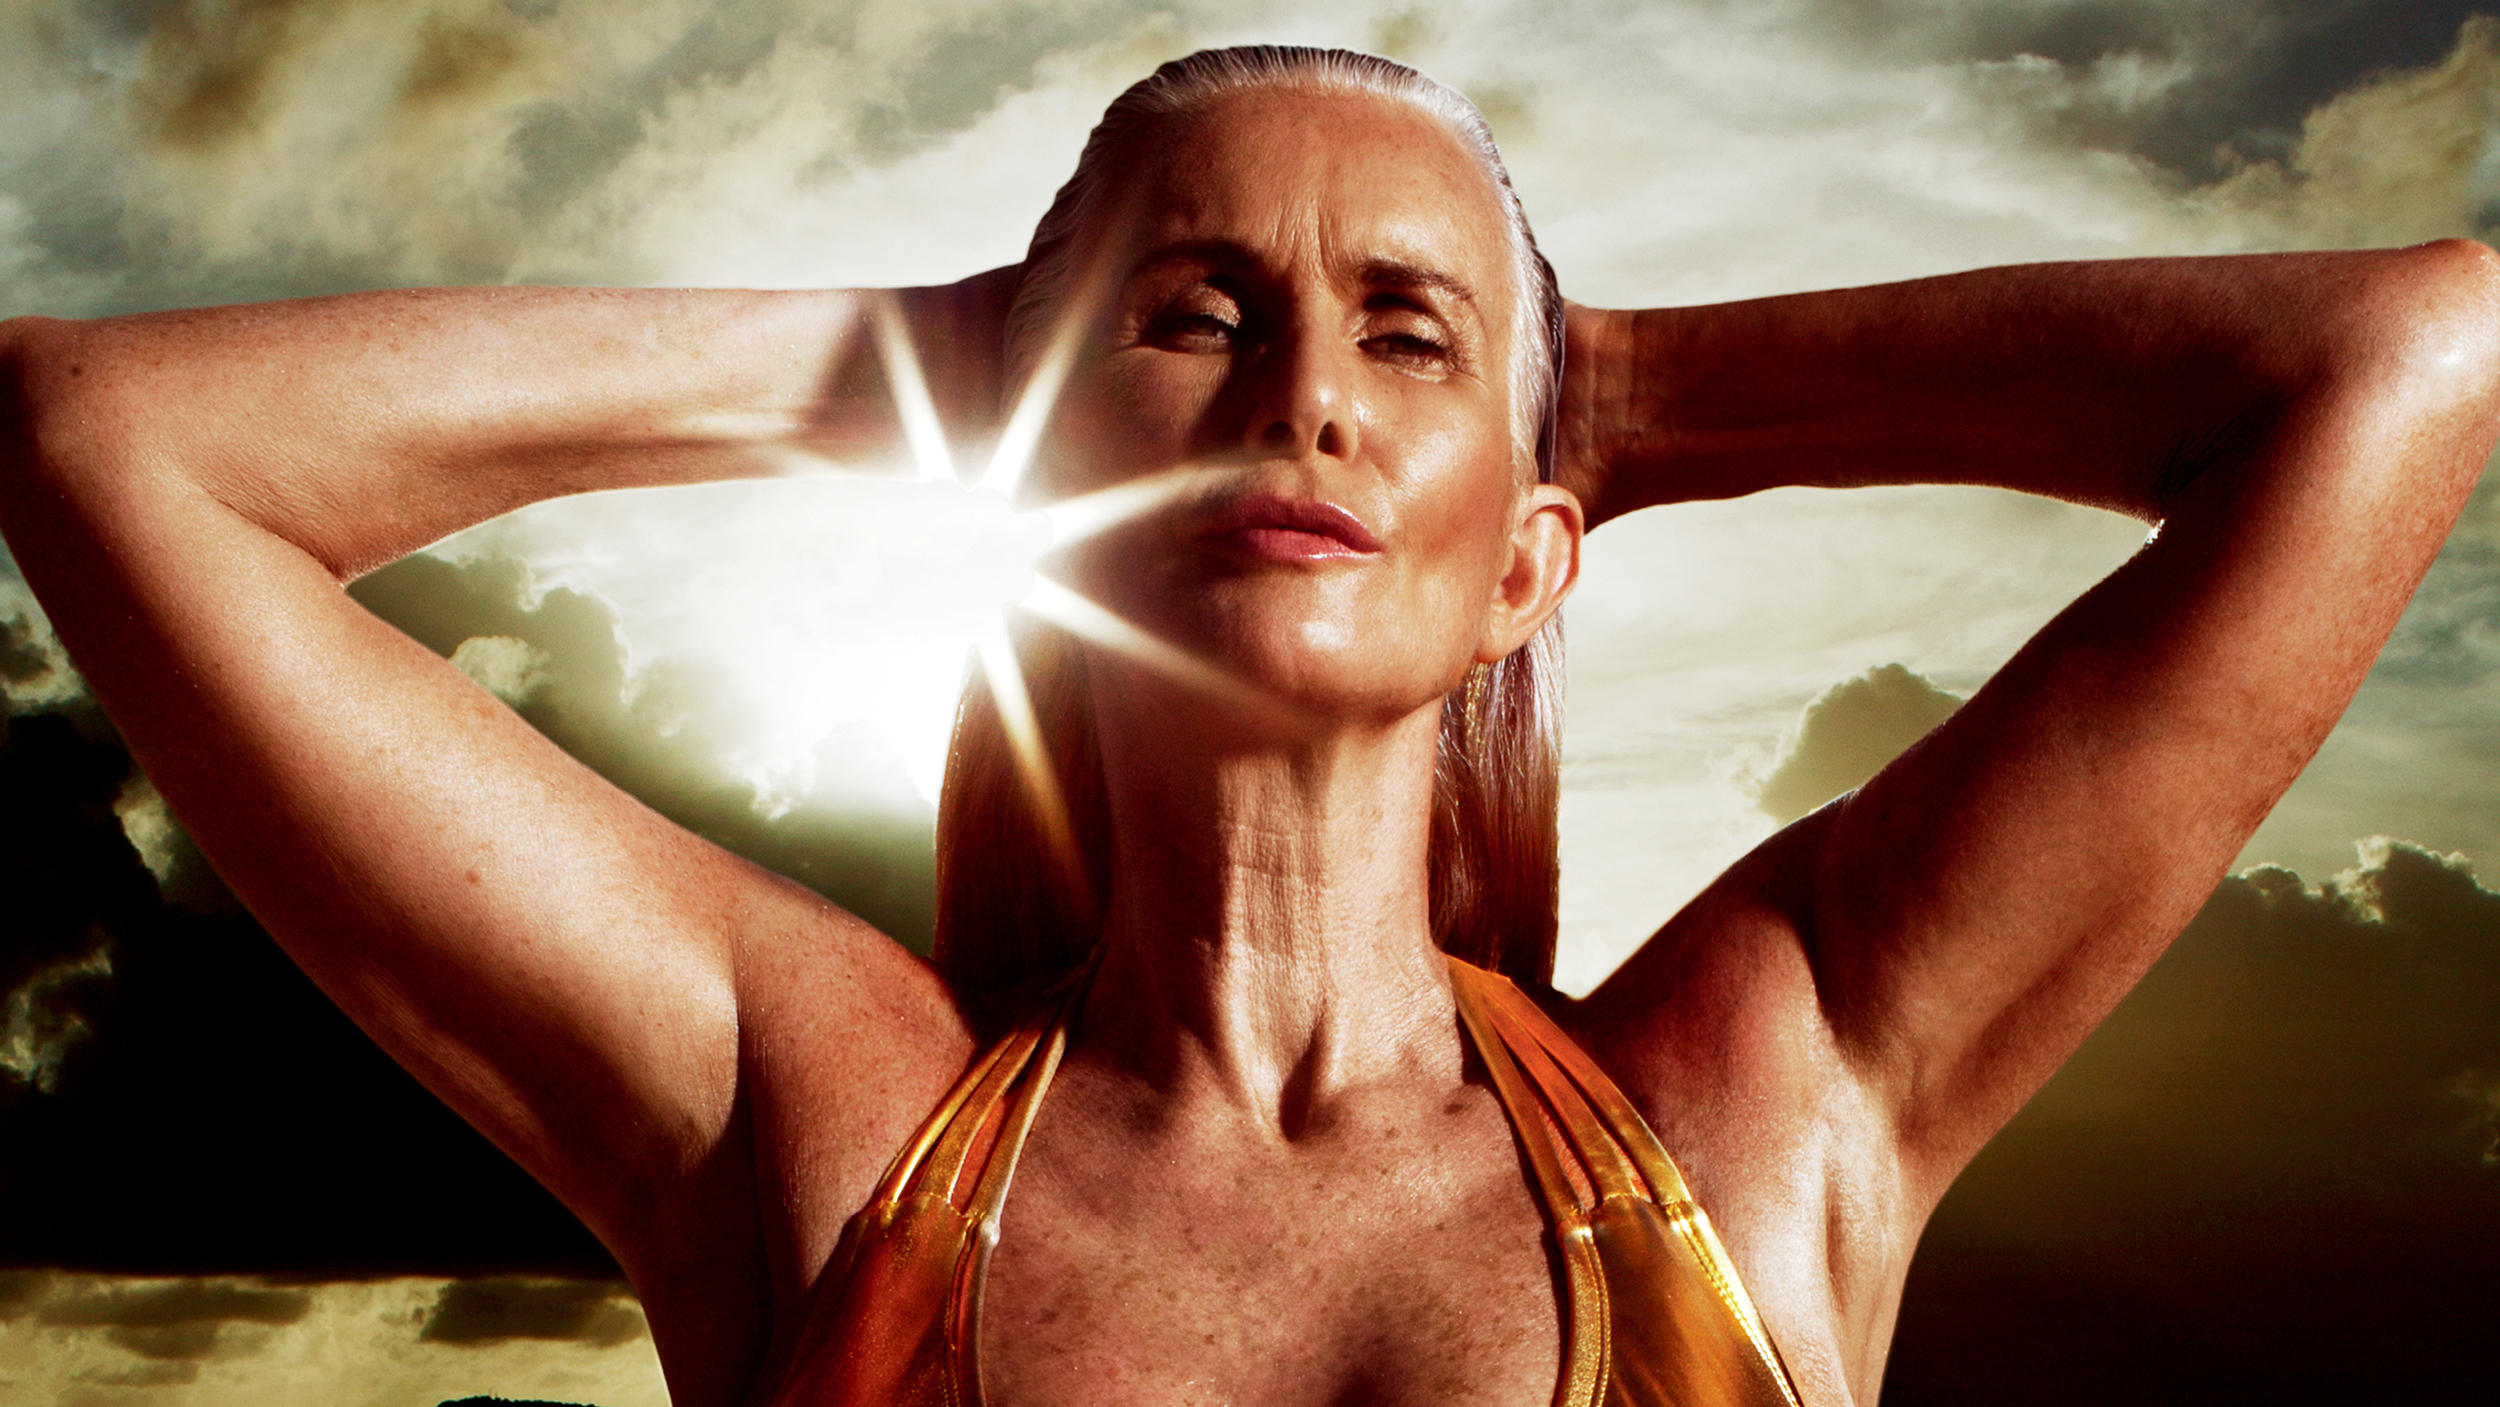 Sports Illustrated Features 56-year-old Model In Annual